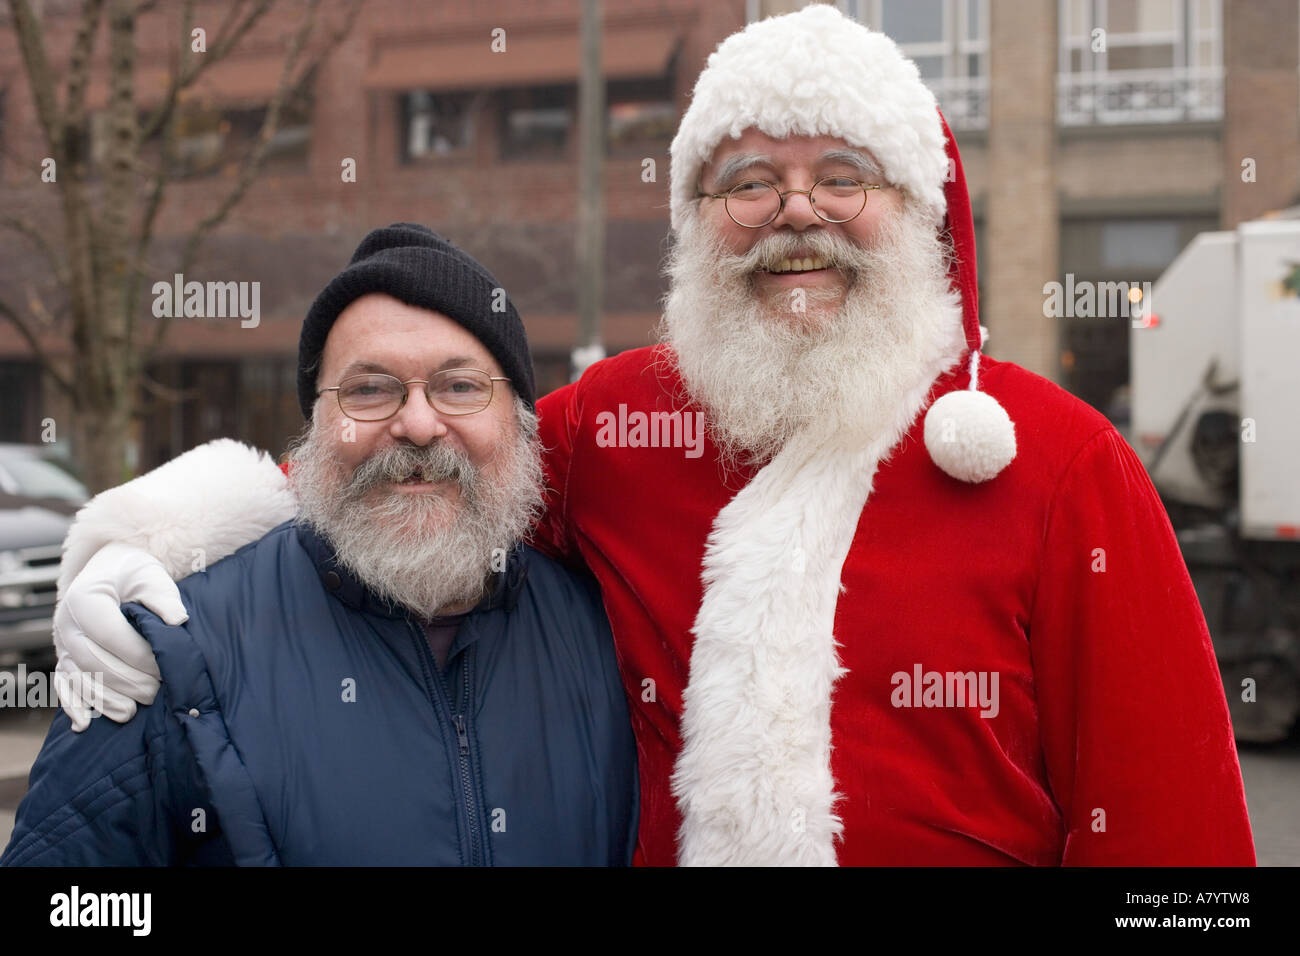 Santa Claus finds his long lost brother in Seattle - Stock Image